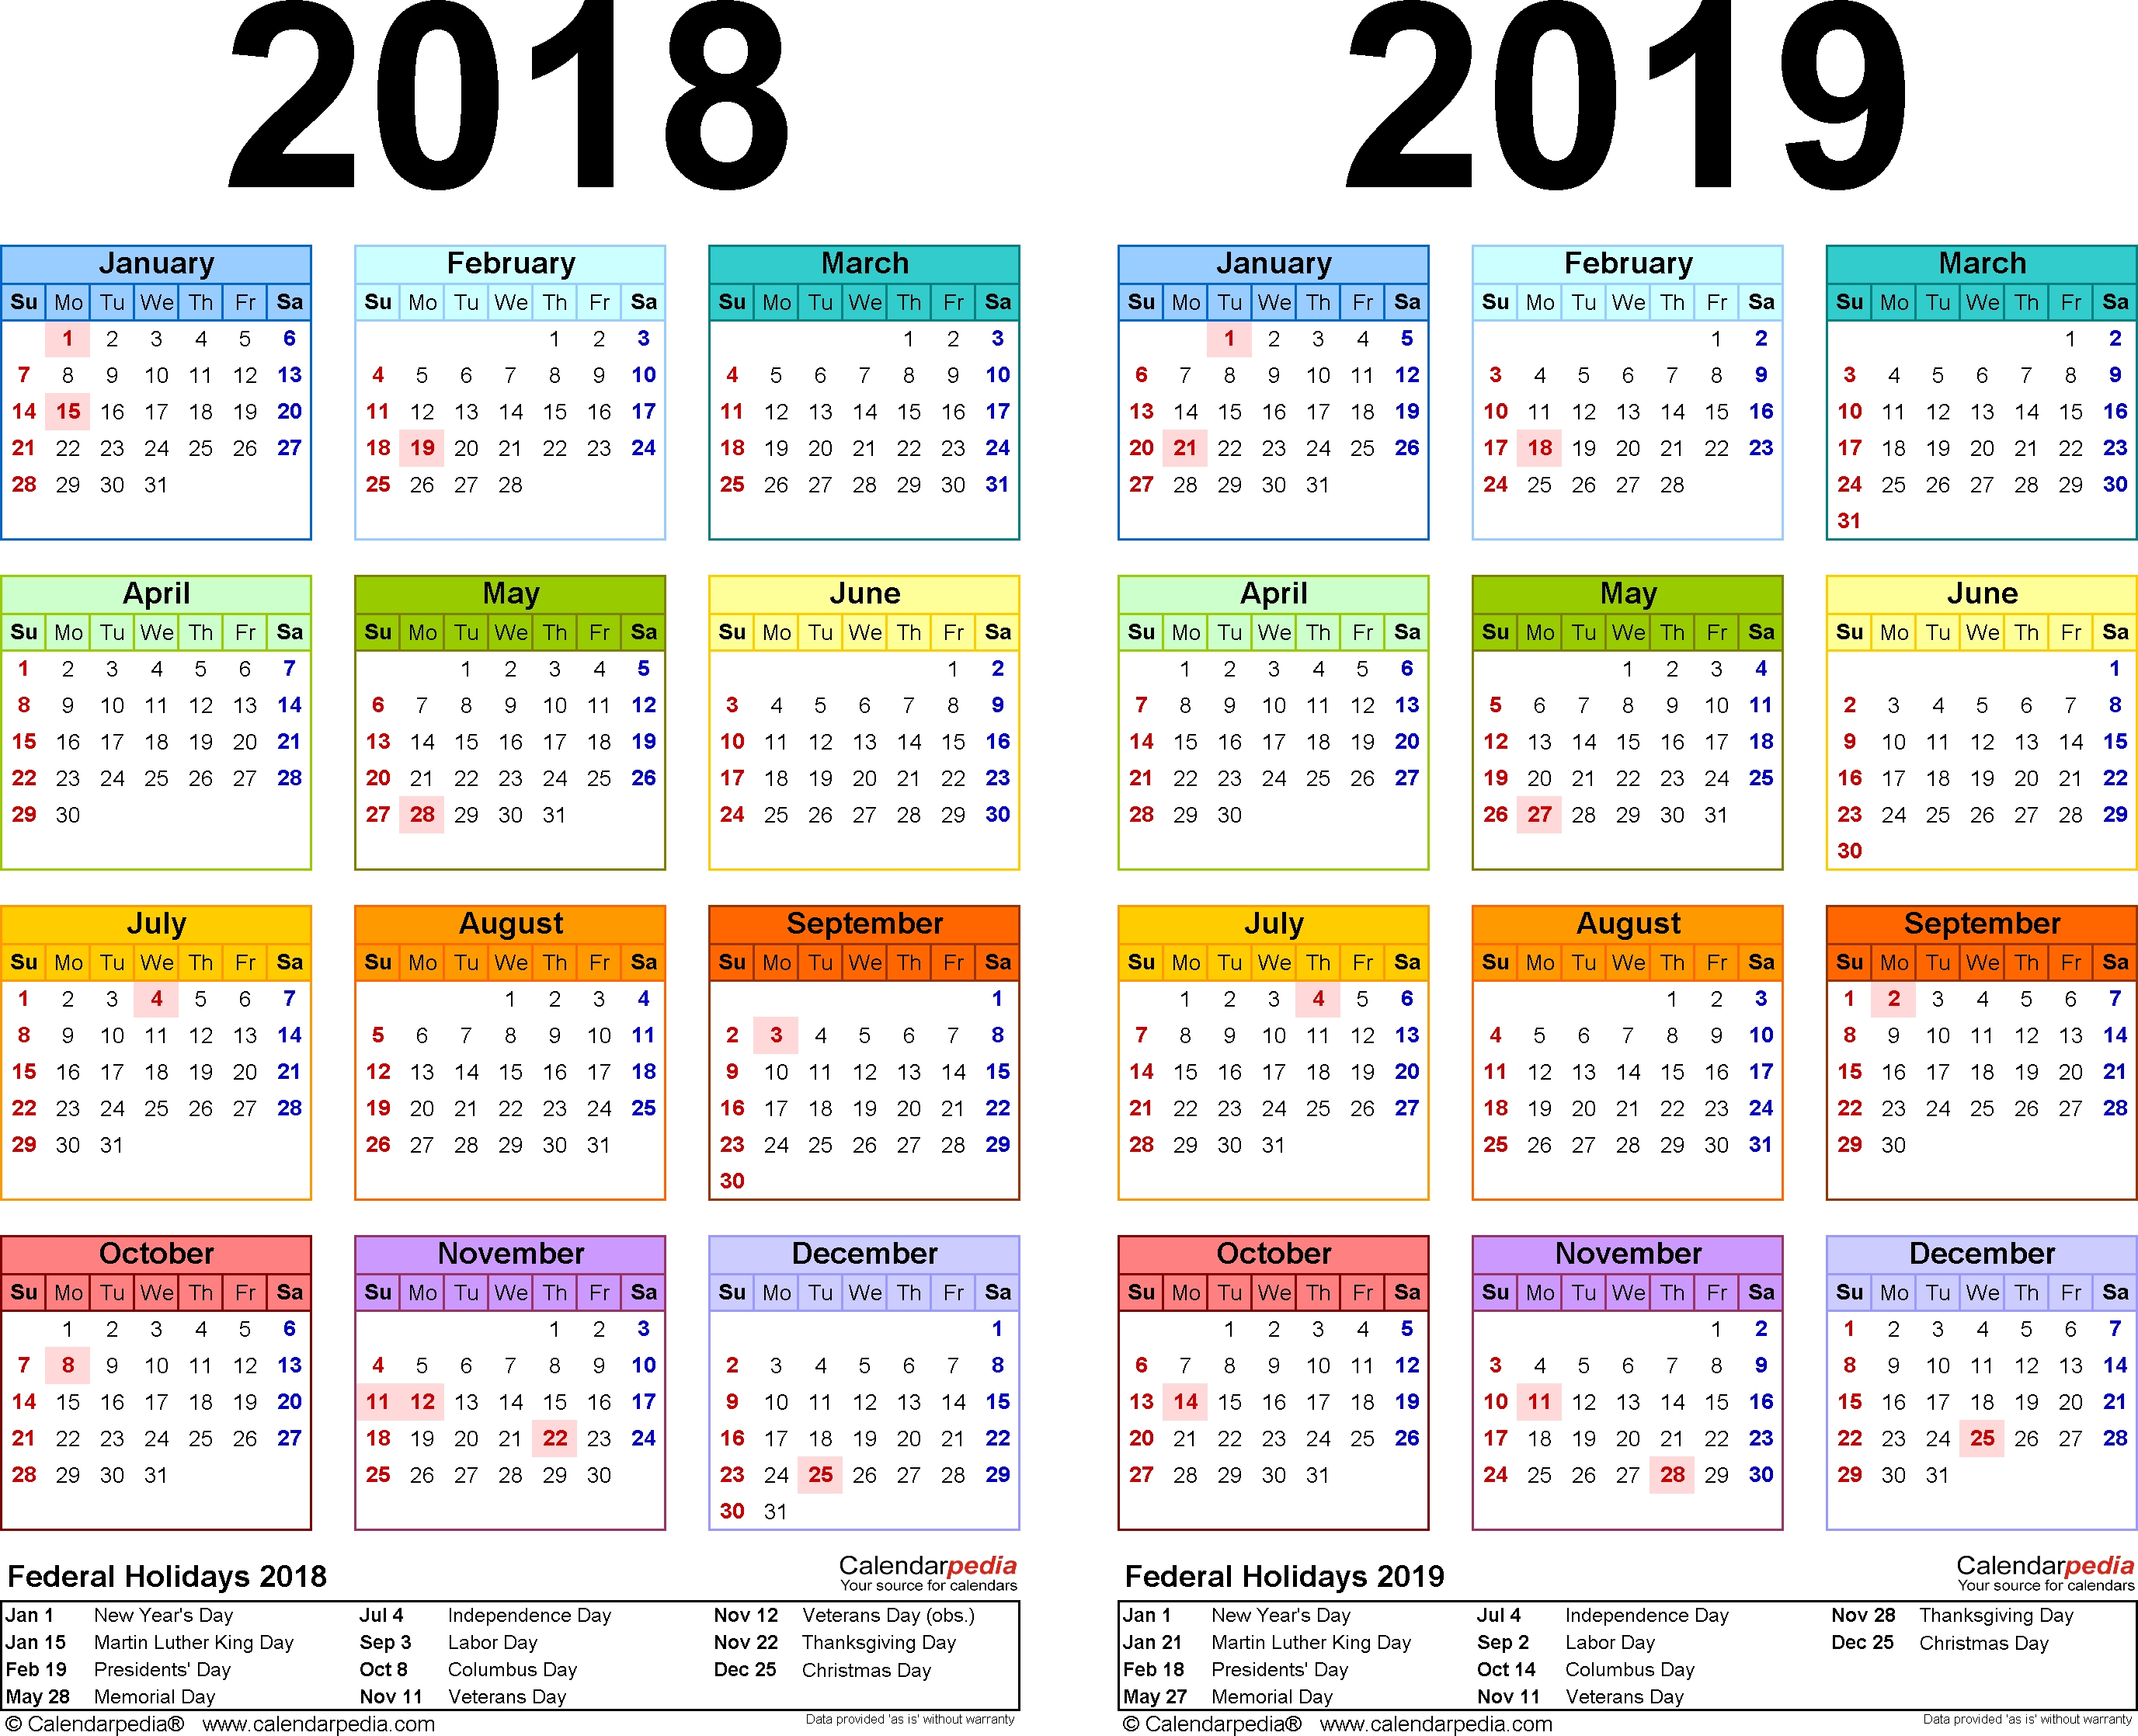 Remarkable 2020 Calendar Singapore Holiday • Printable Blank for Free Printable Calendars 2019-2020 With Holidays